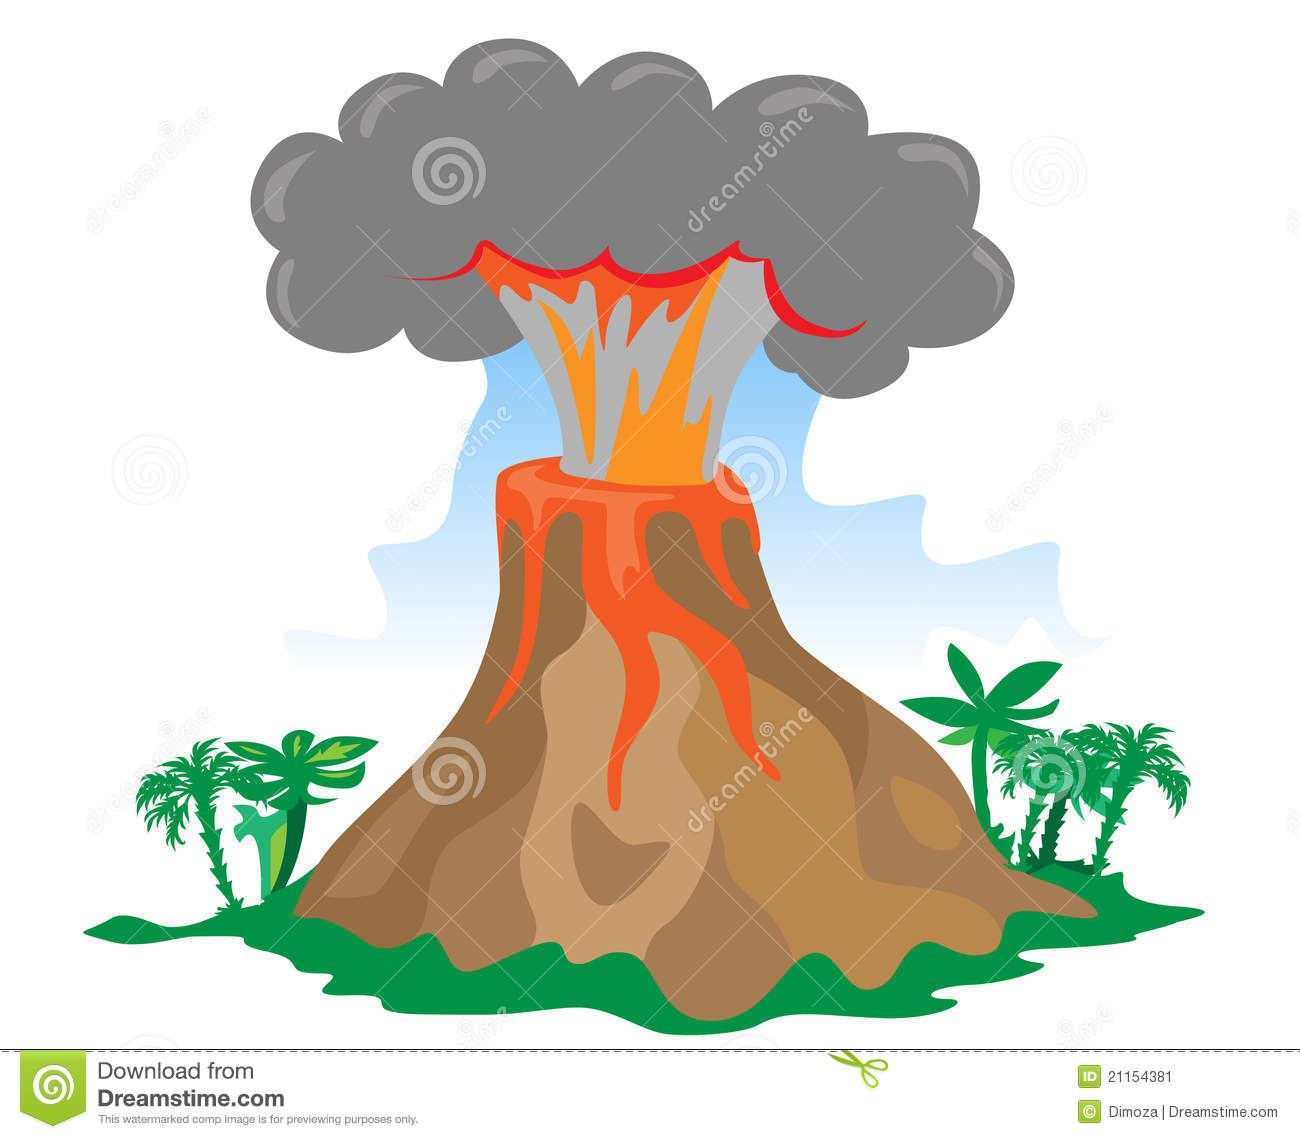 Eruption clipart #12, Download drawings